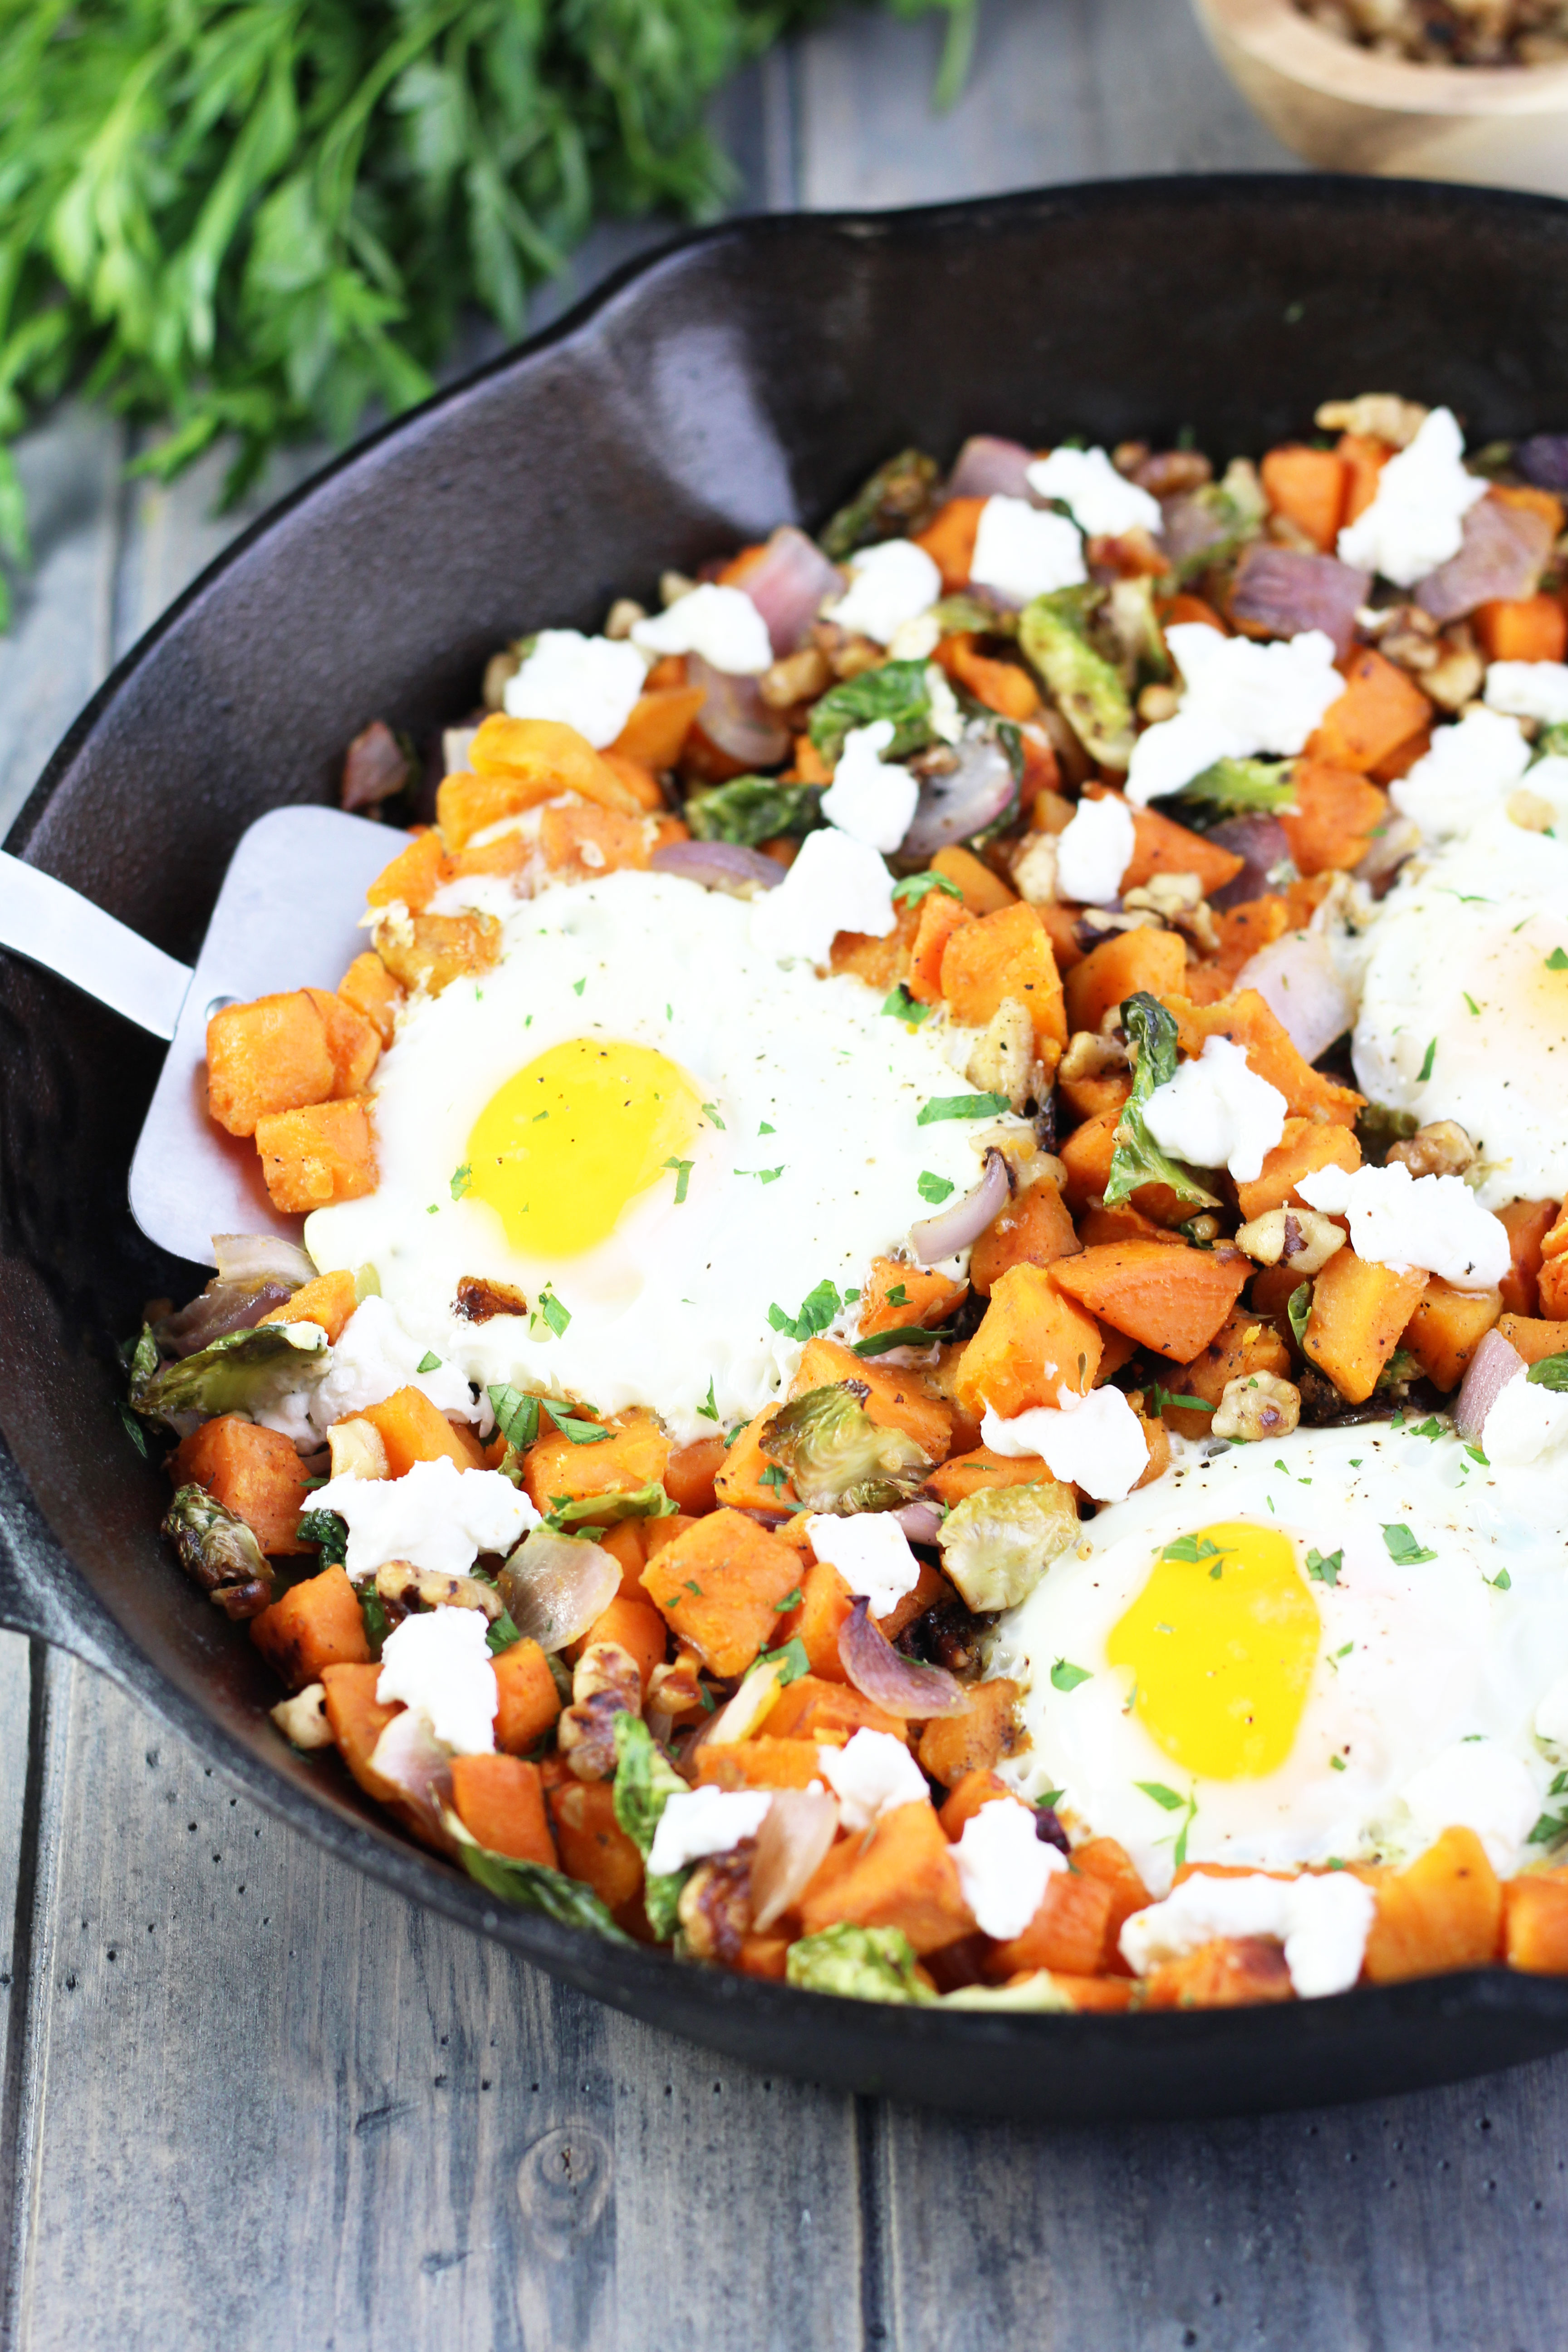 Sweet-Potato-Hash-with-Brussel-Sprouts-and-Goat-Cheese10pg